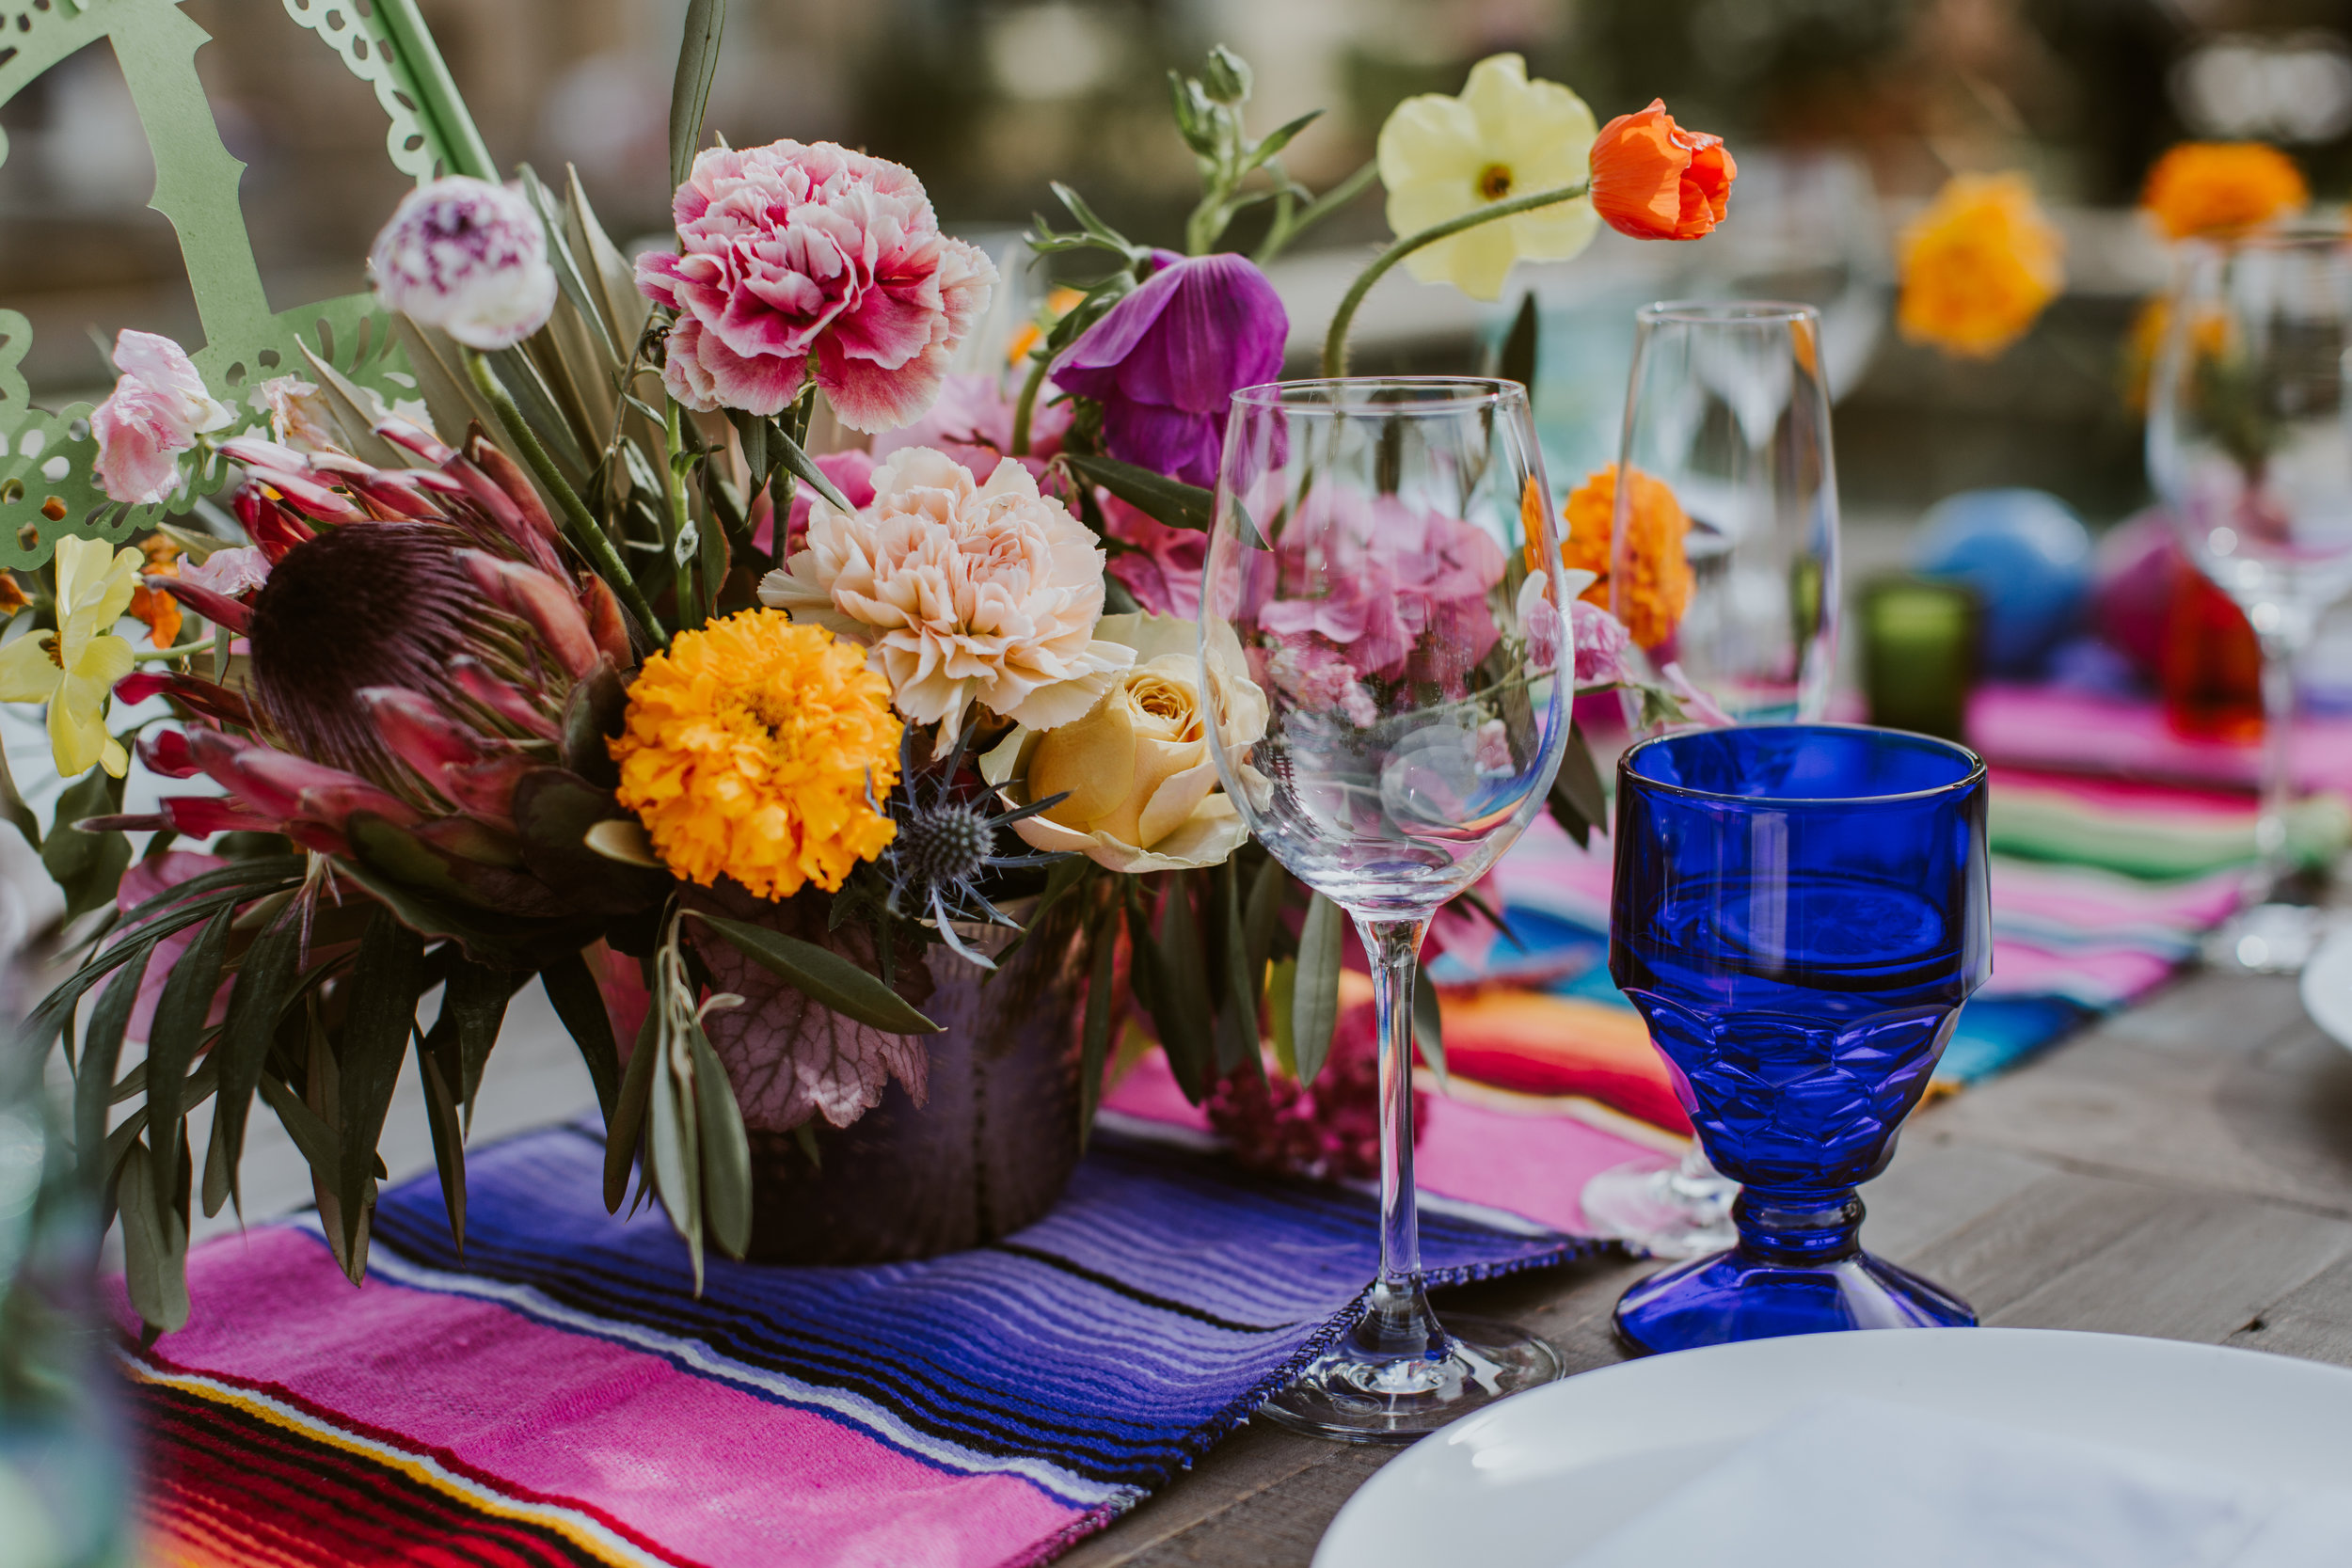 www.santabarbarawedding.com | Burgundy Blue | Ventura Rentals | Fleur De Rye | Catering Connection | Colorful Table Settings and Flowers